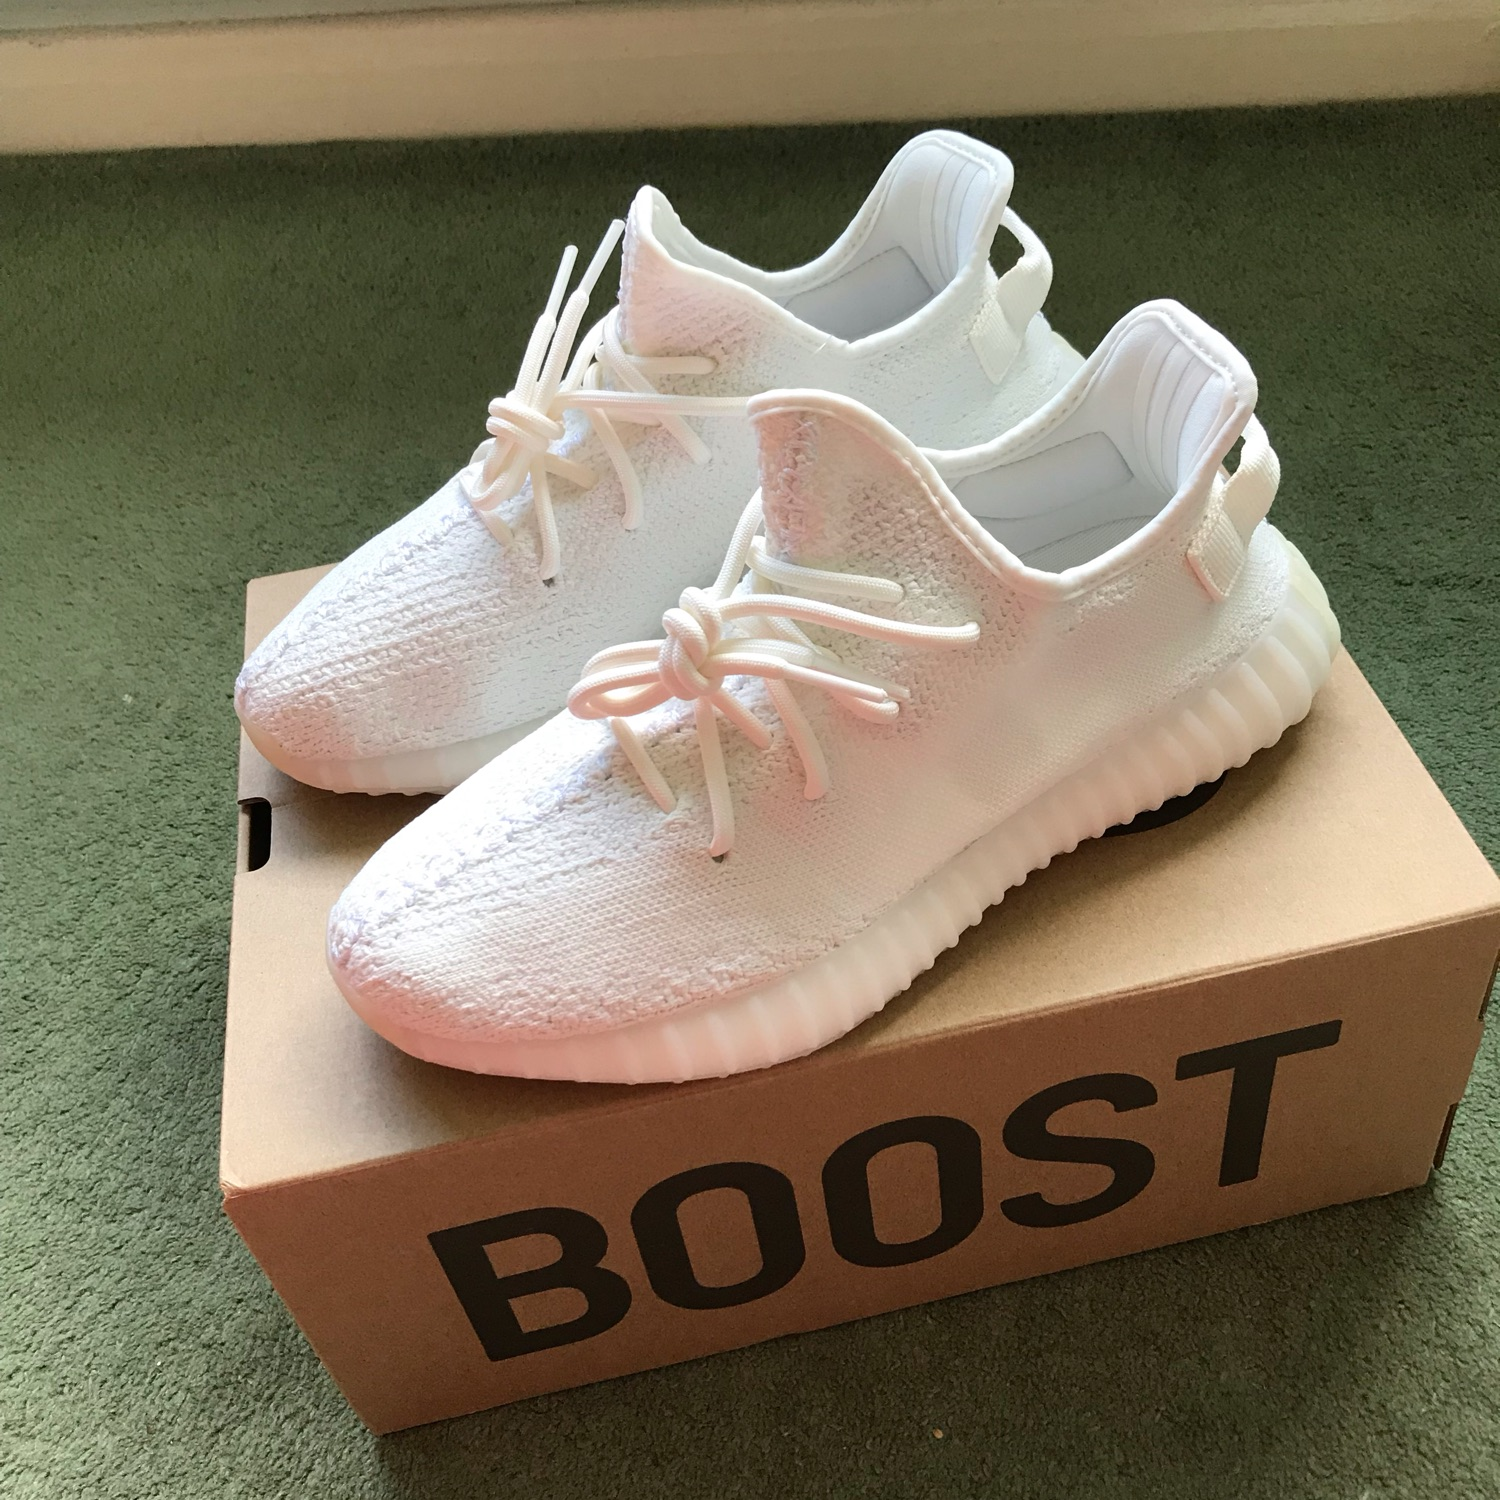 new arrival 47b08 3a5d4 Adidas Yeezy Boost 350 V2 Cream/Triple White